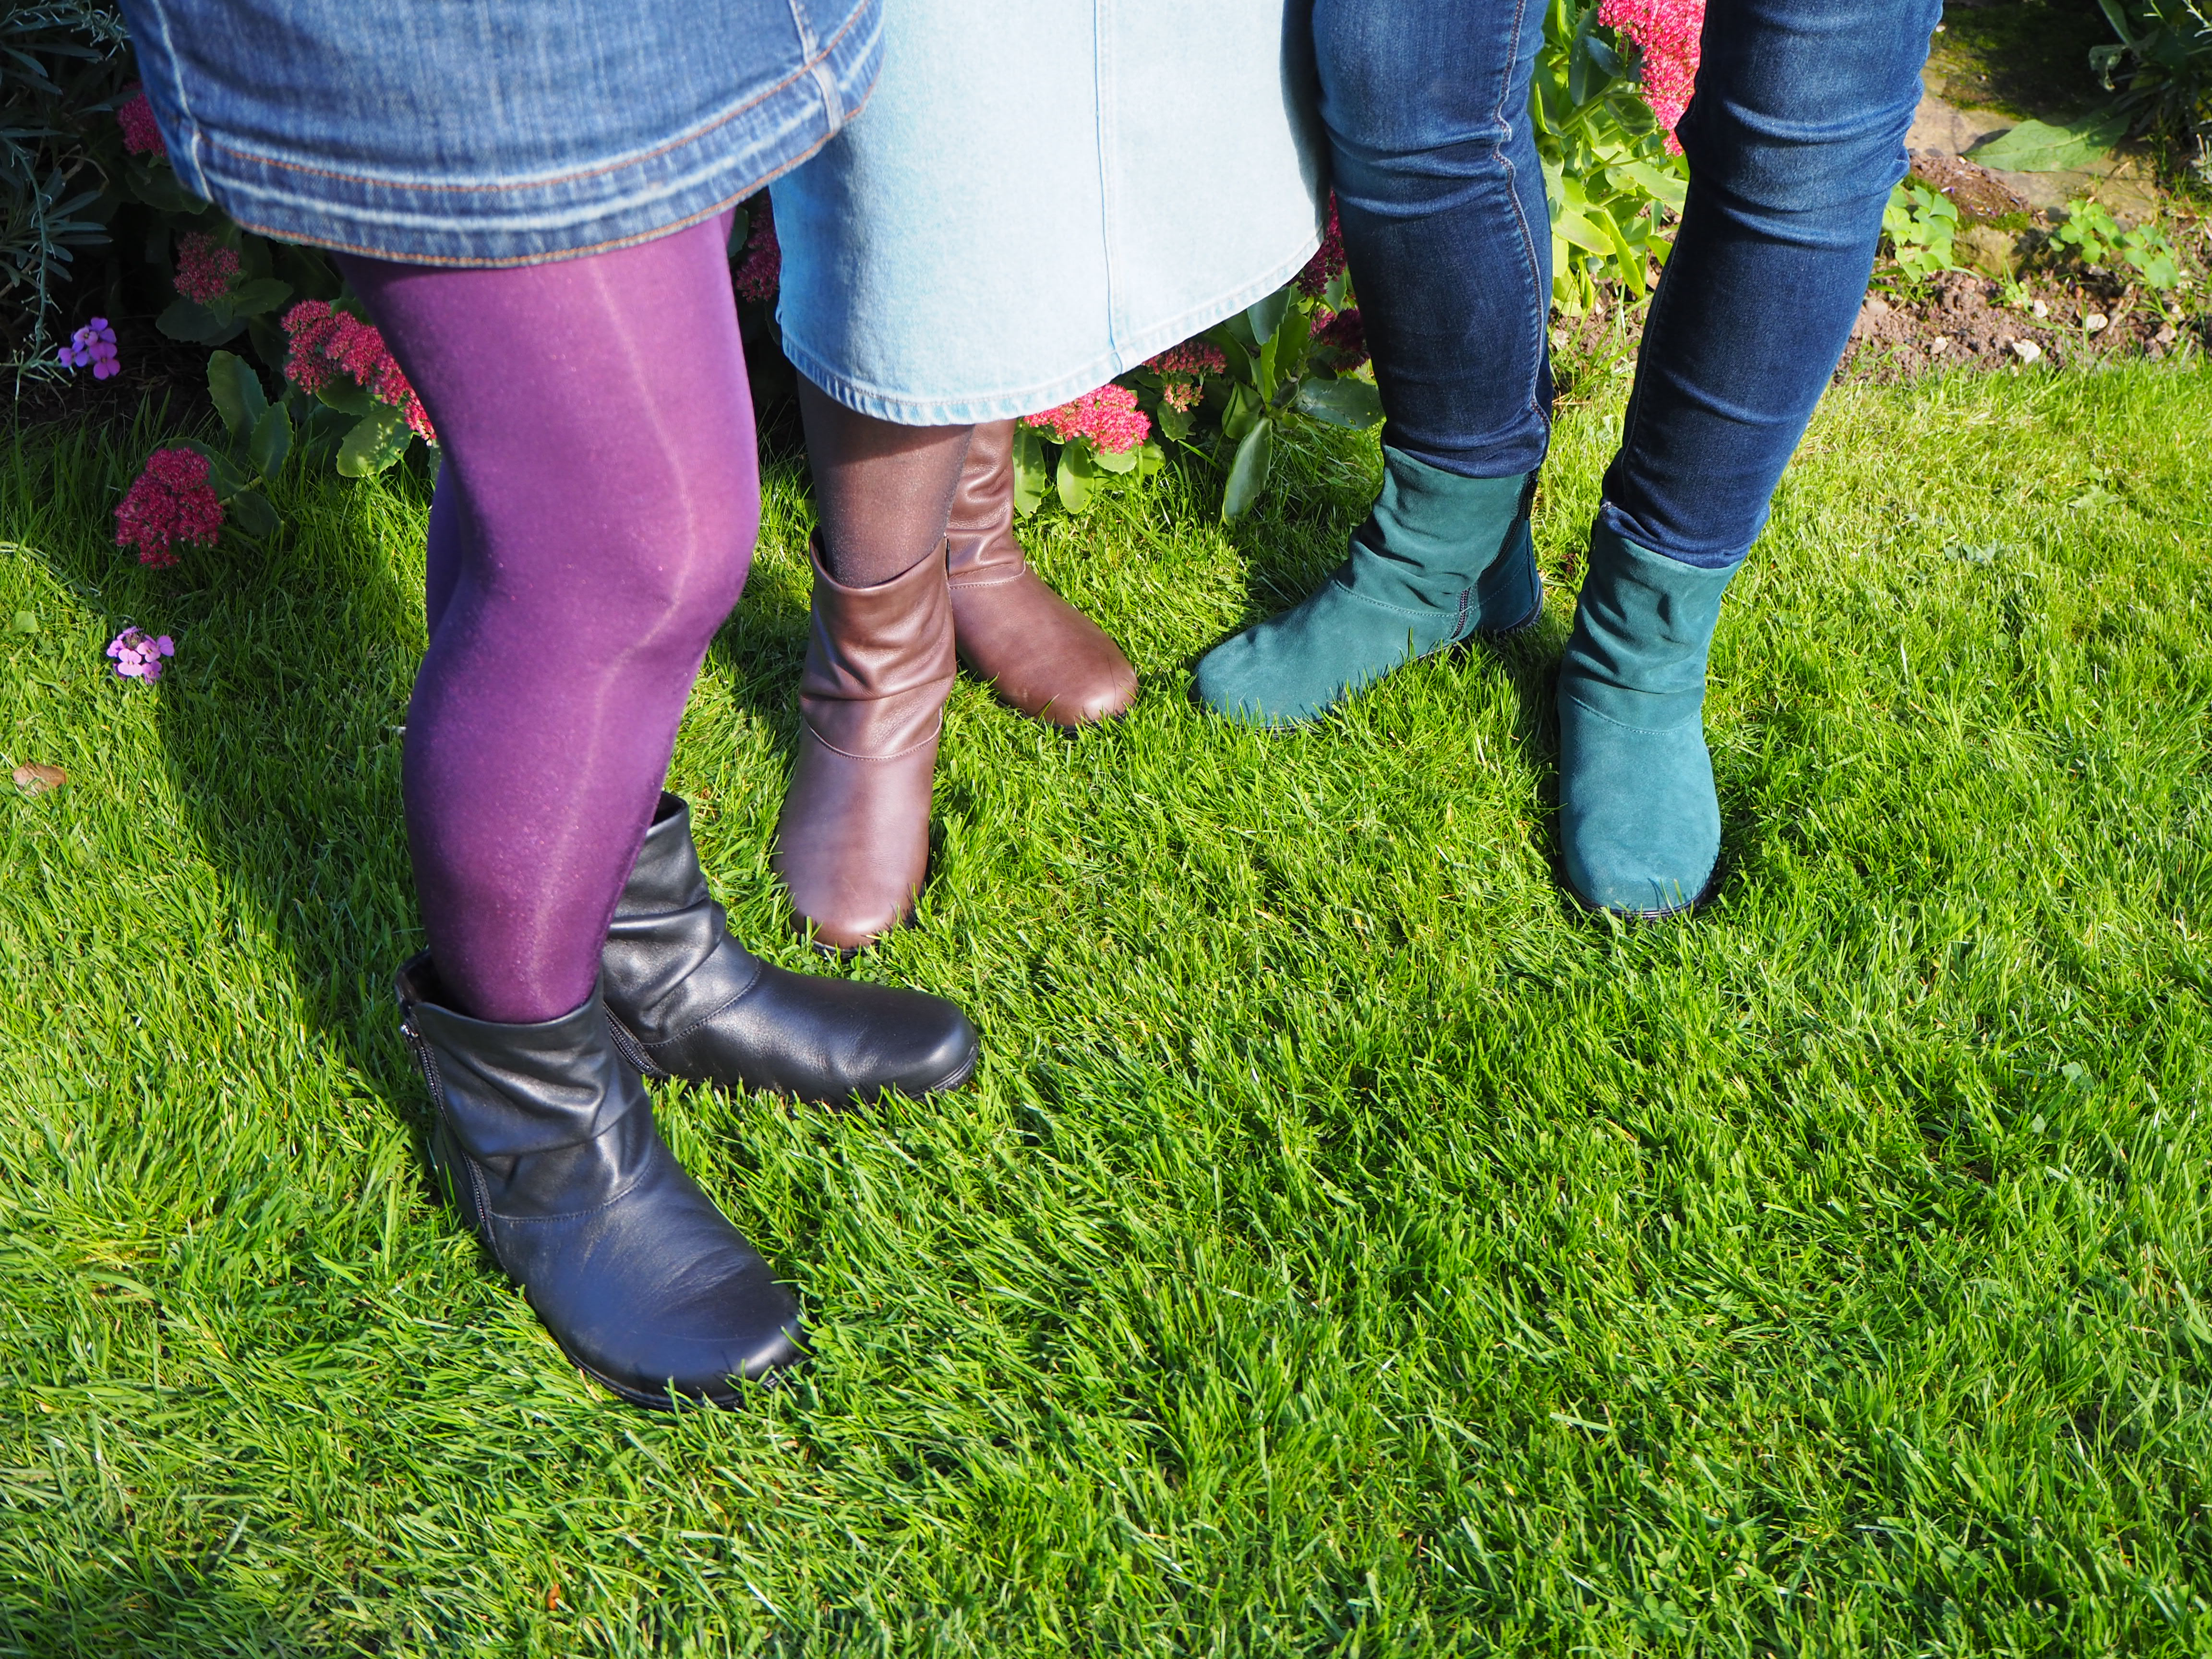 Hotter Whisper boots in 3 colours, teal, black and brown